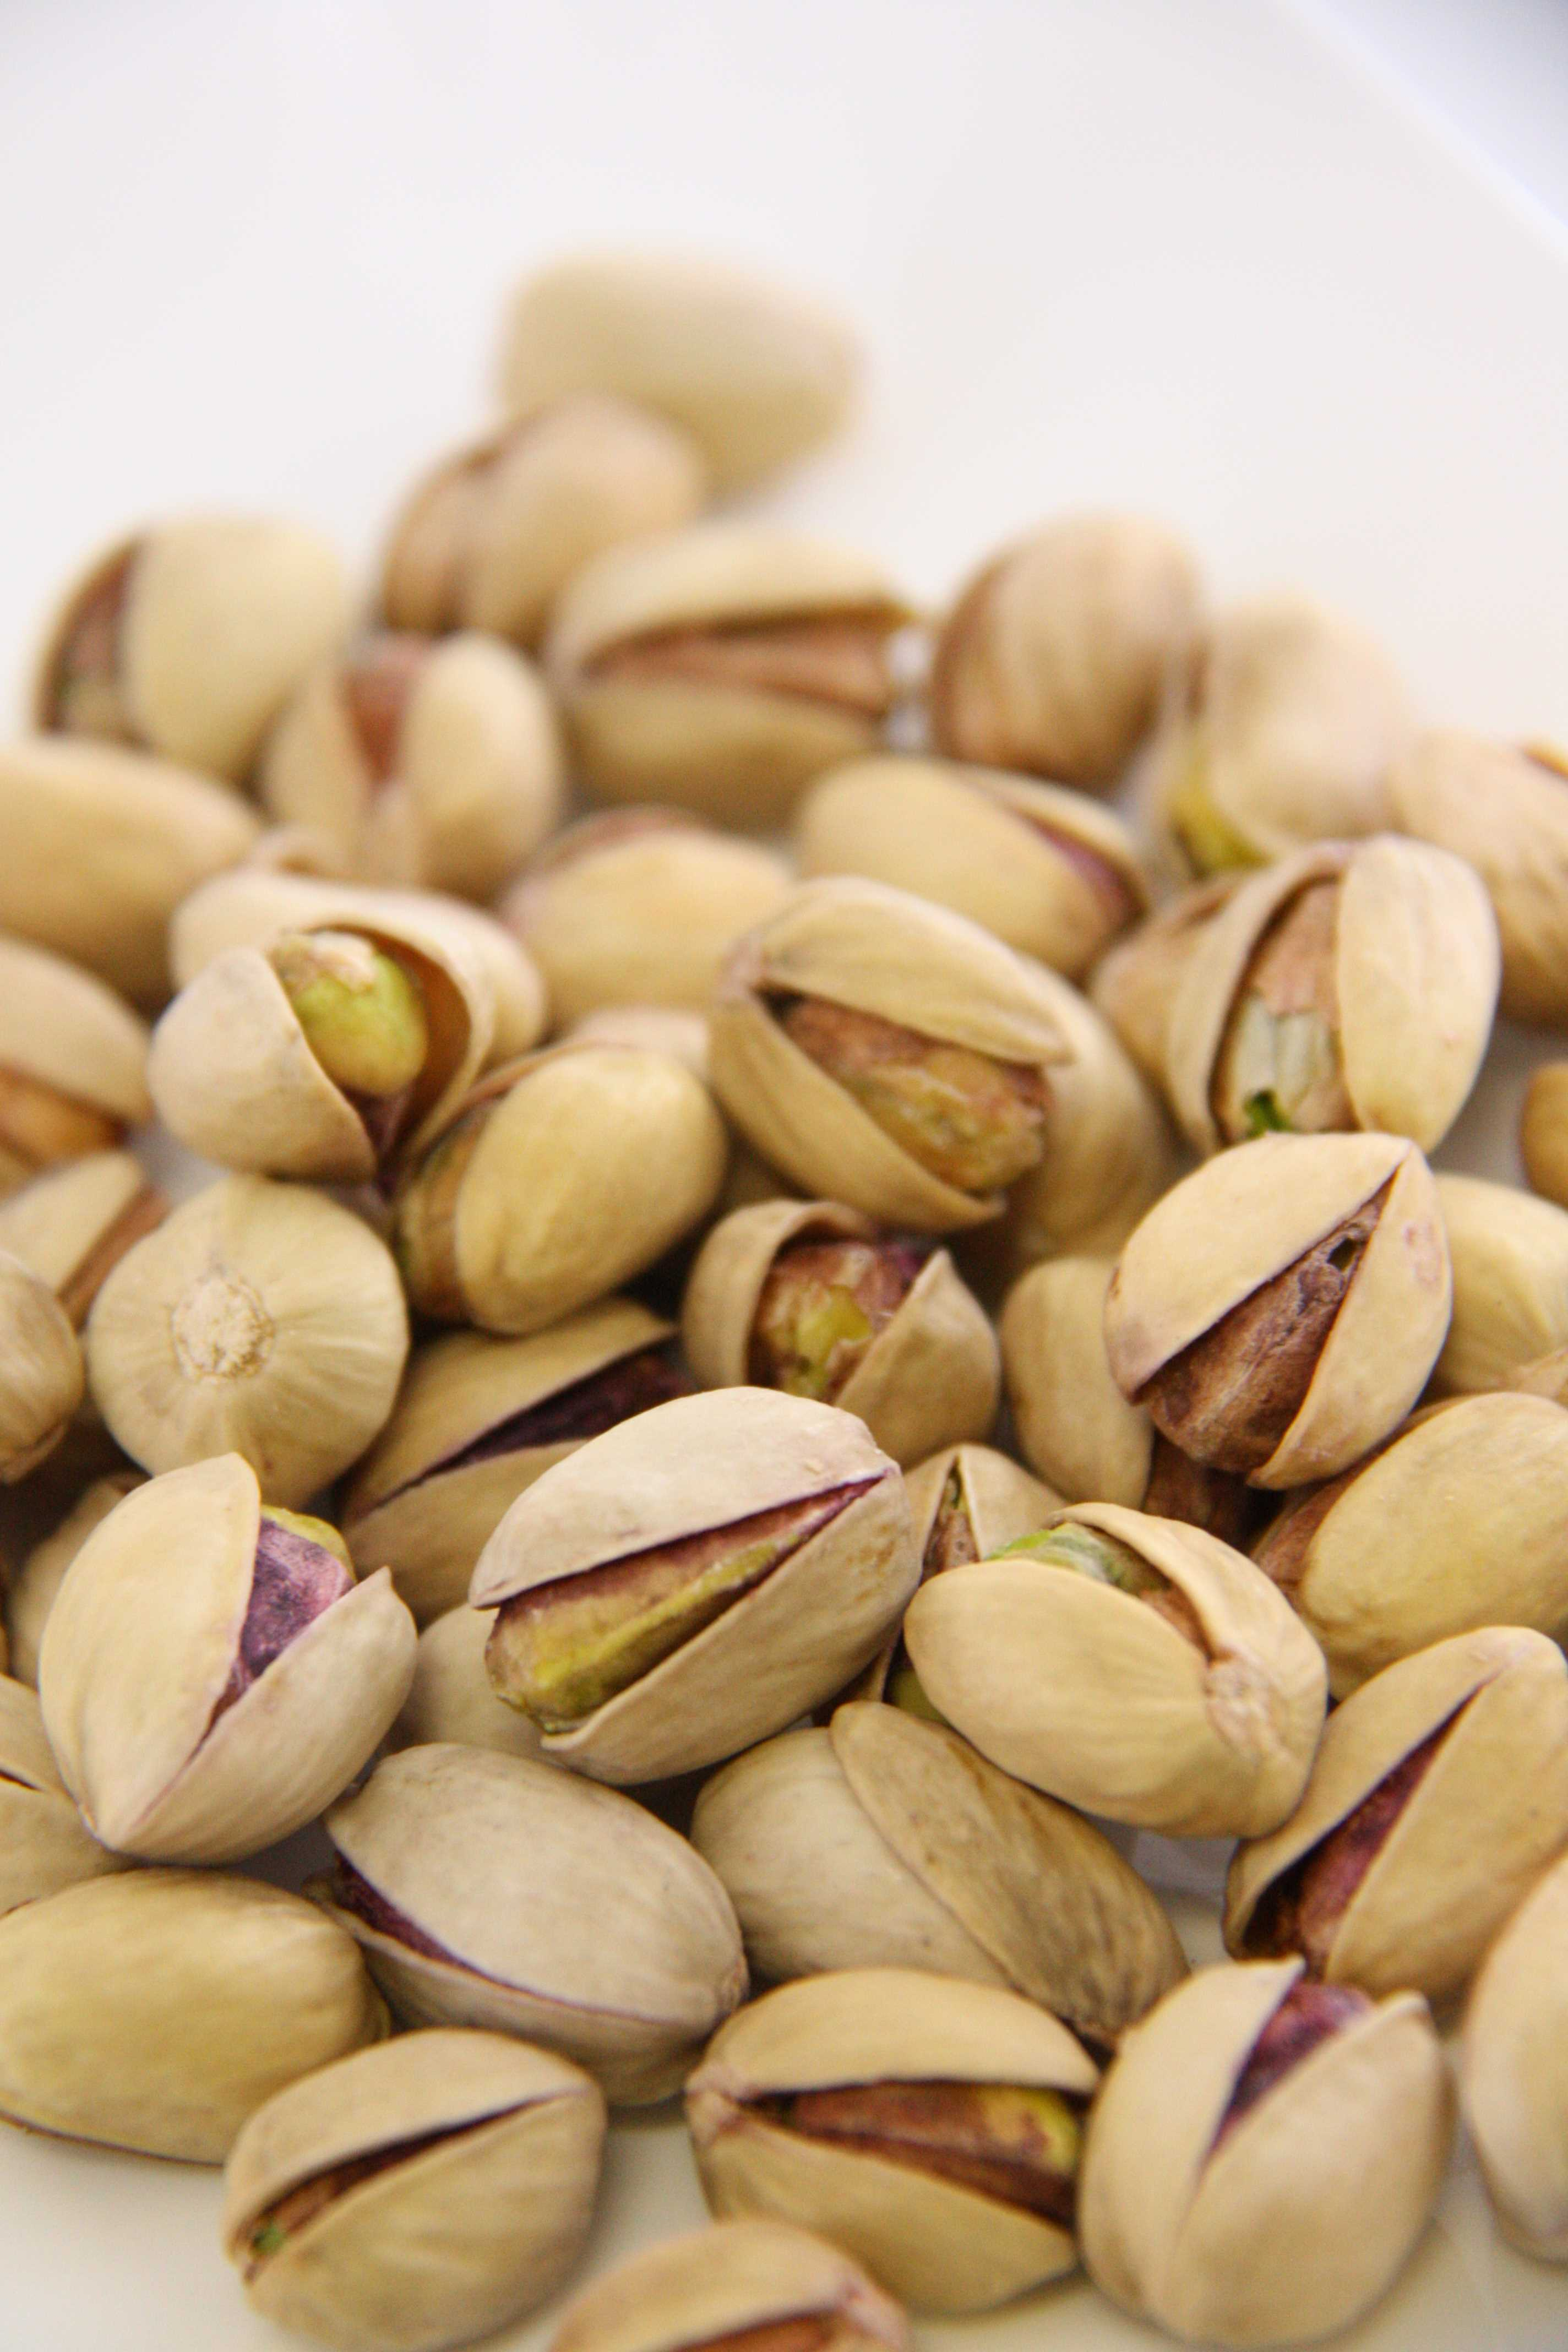 AMERICAN ROASTED PISTACHIOS (XL)